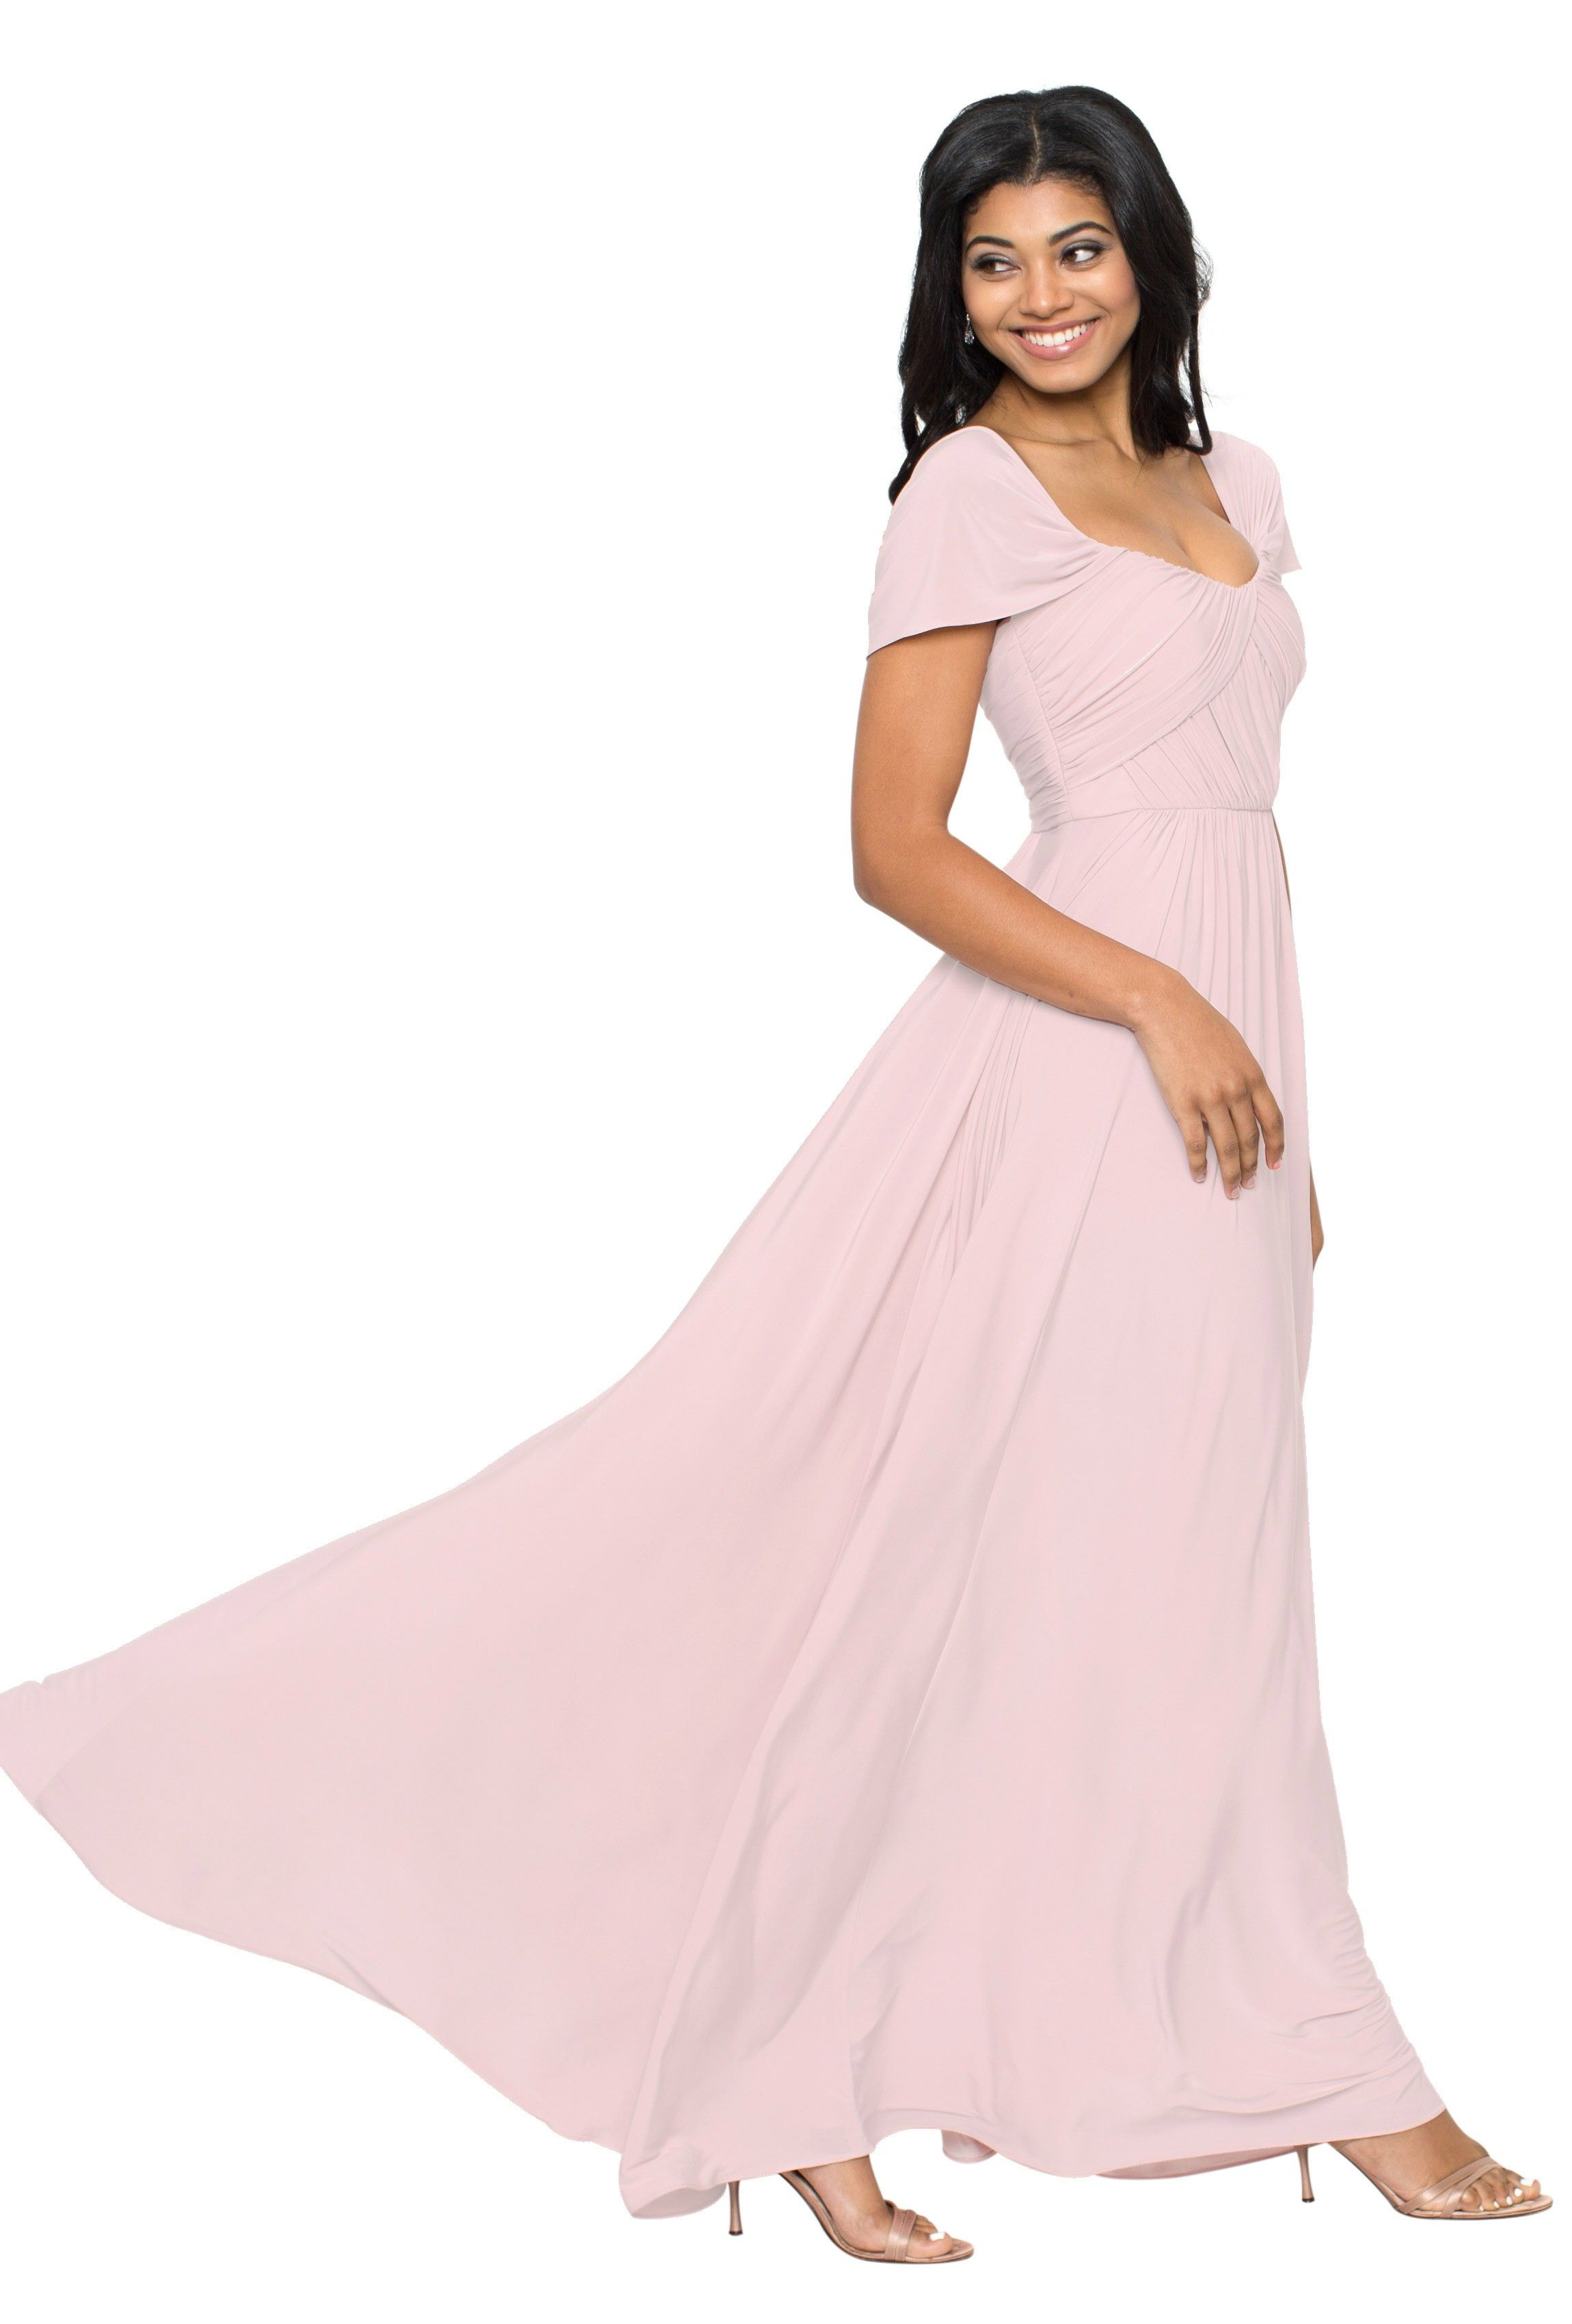 Jy jenny yoo taylor convertible bridesmaid dresses designer a floor length convertible cap sleeve bridesmaid dress in eight colors affordable designer bridesmaid ombrellifo Image collections